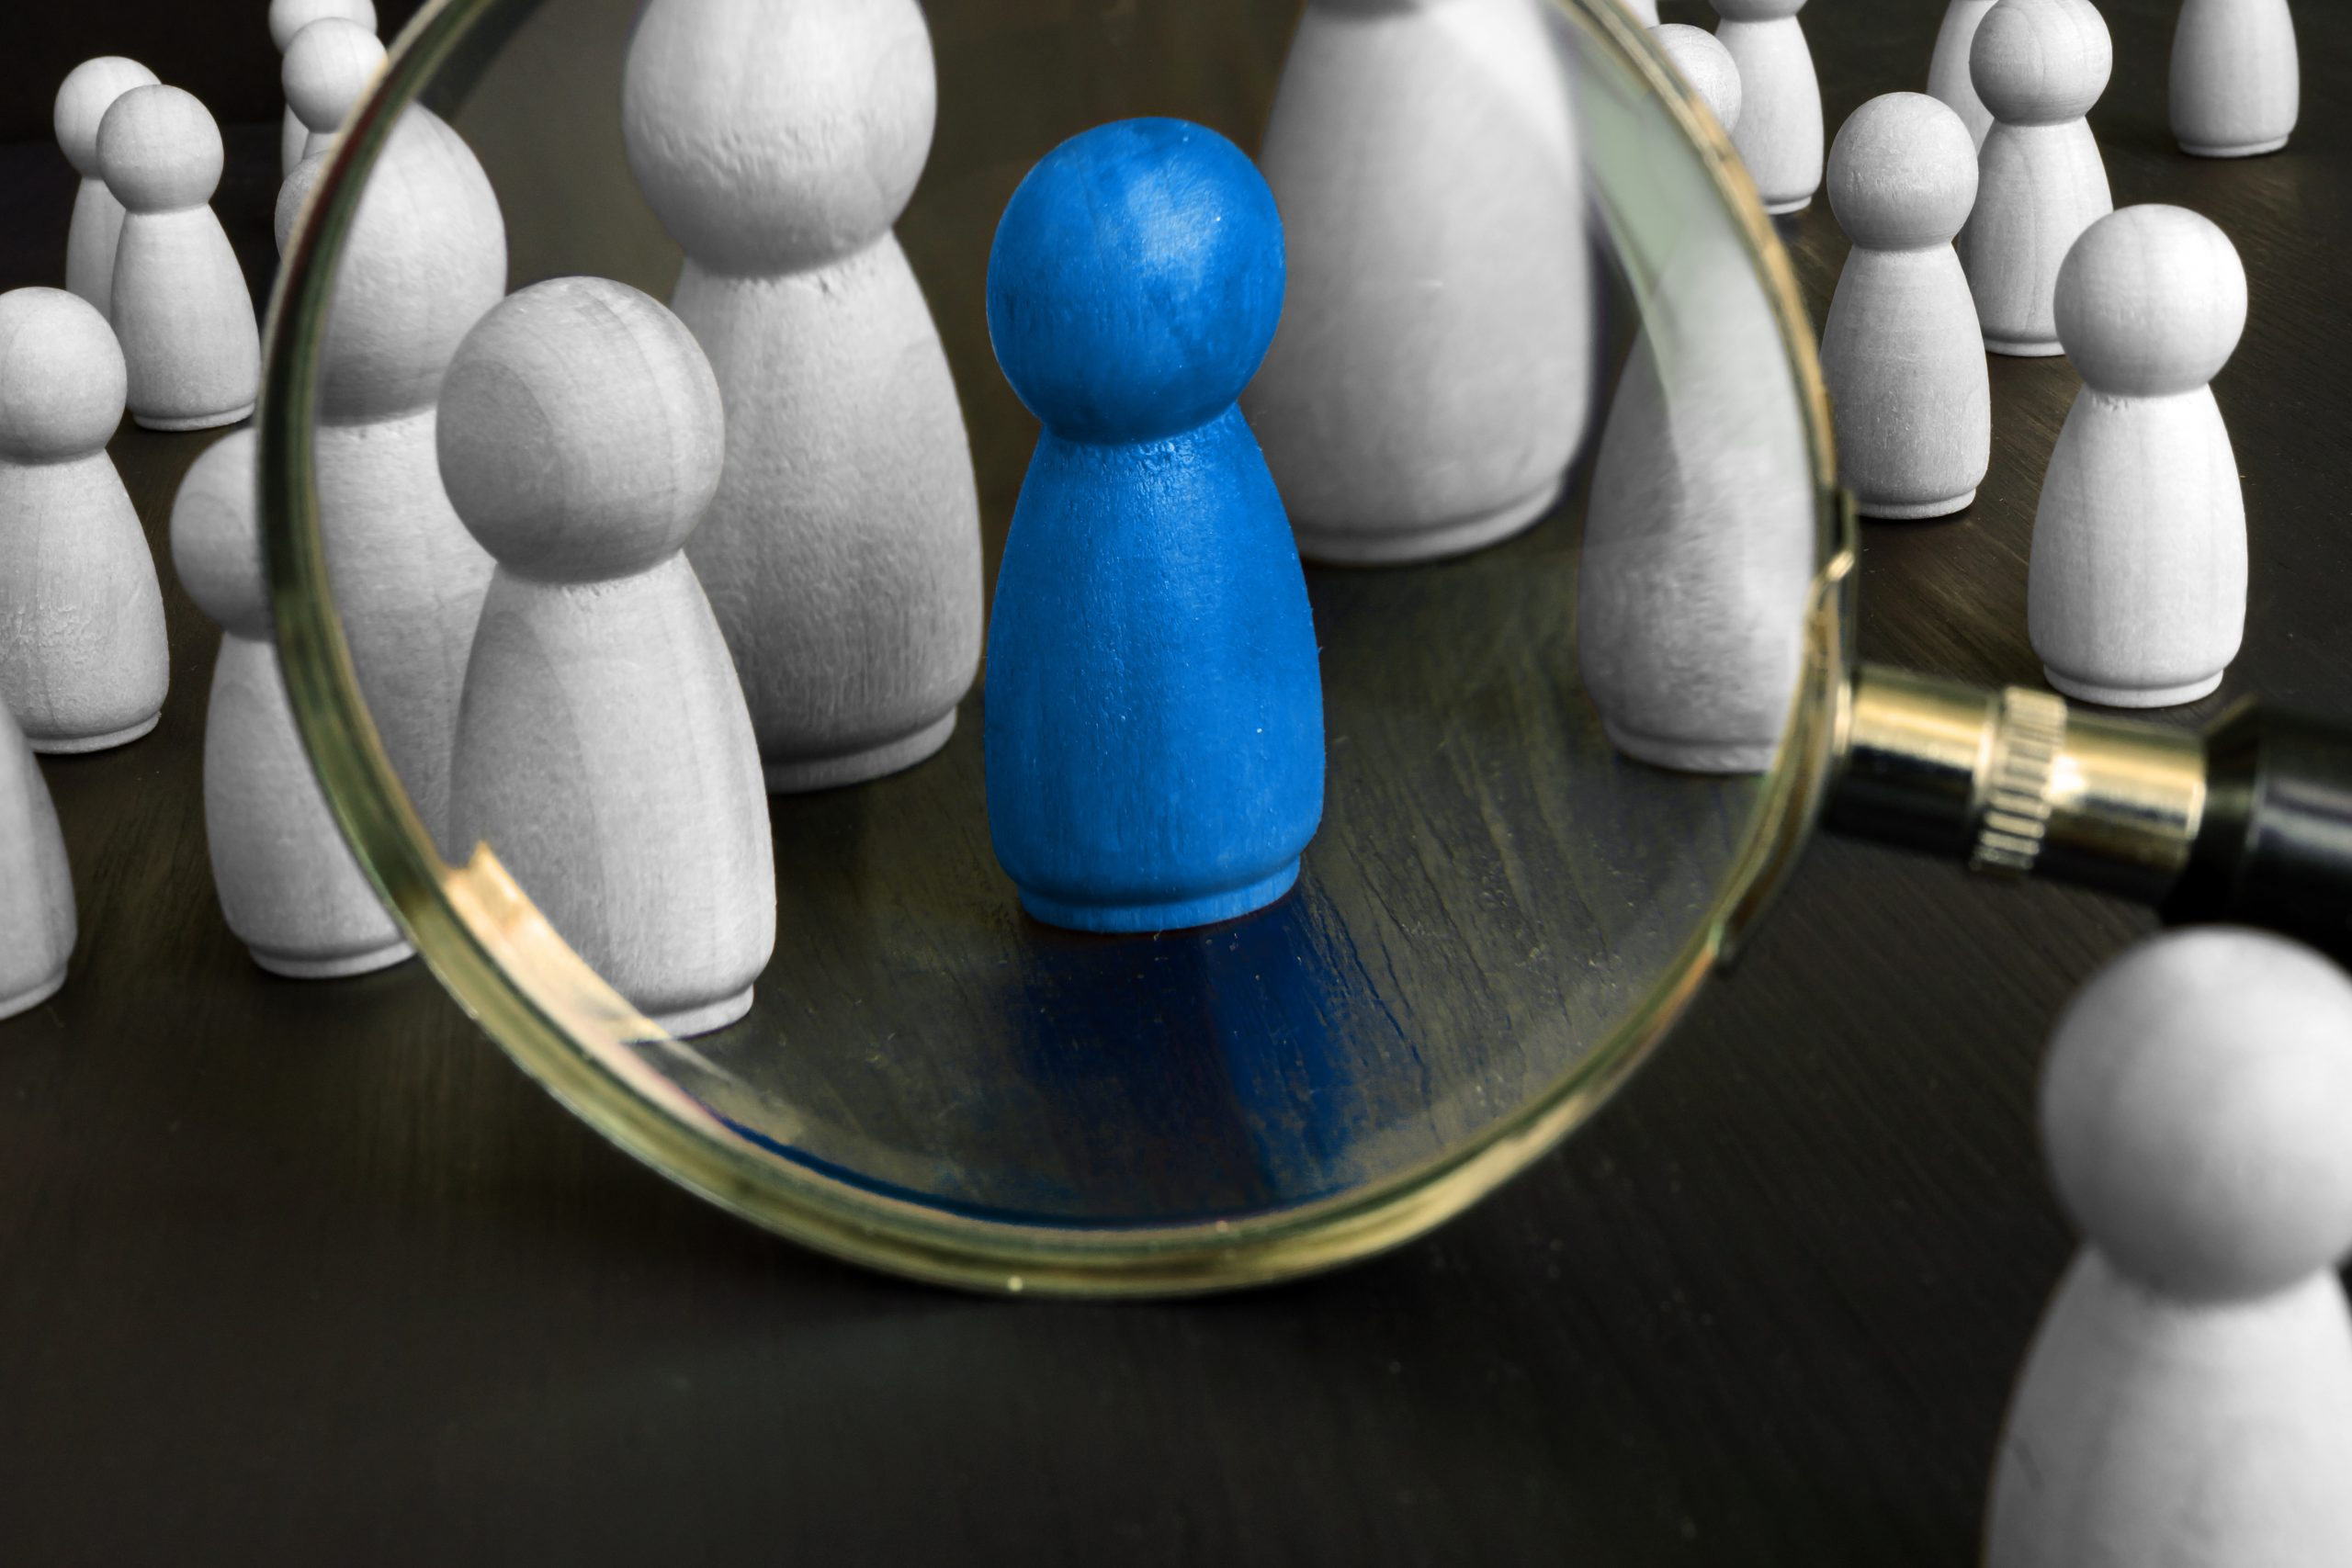 group of wooden pawns with blue focal pawn in a magnifying glass